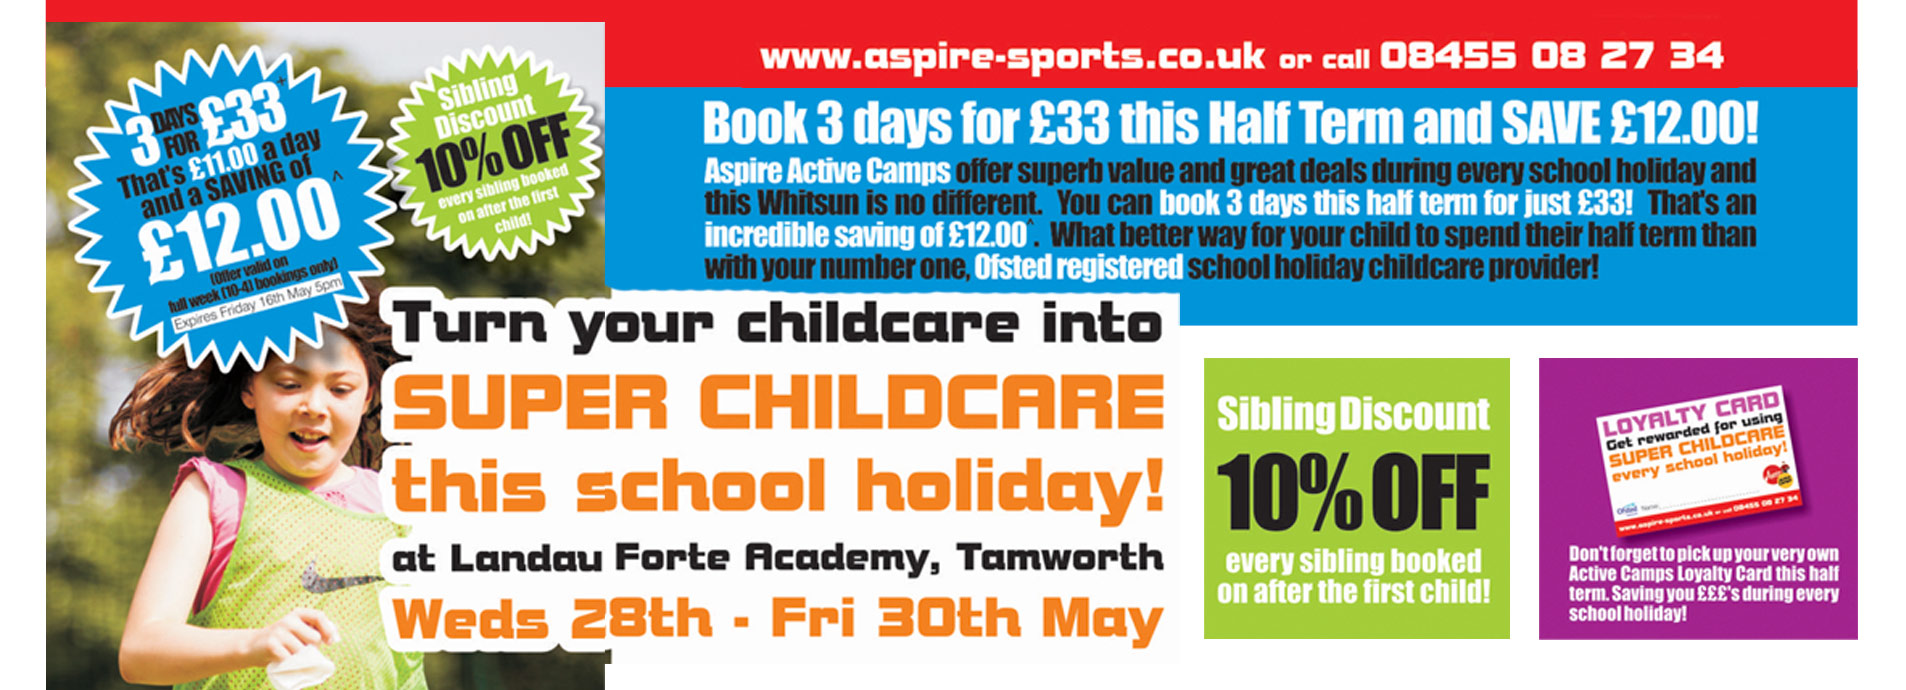 May Half Term Childcare Offer: Aspire Active Camps